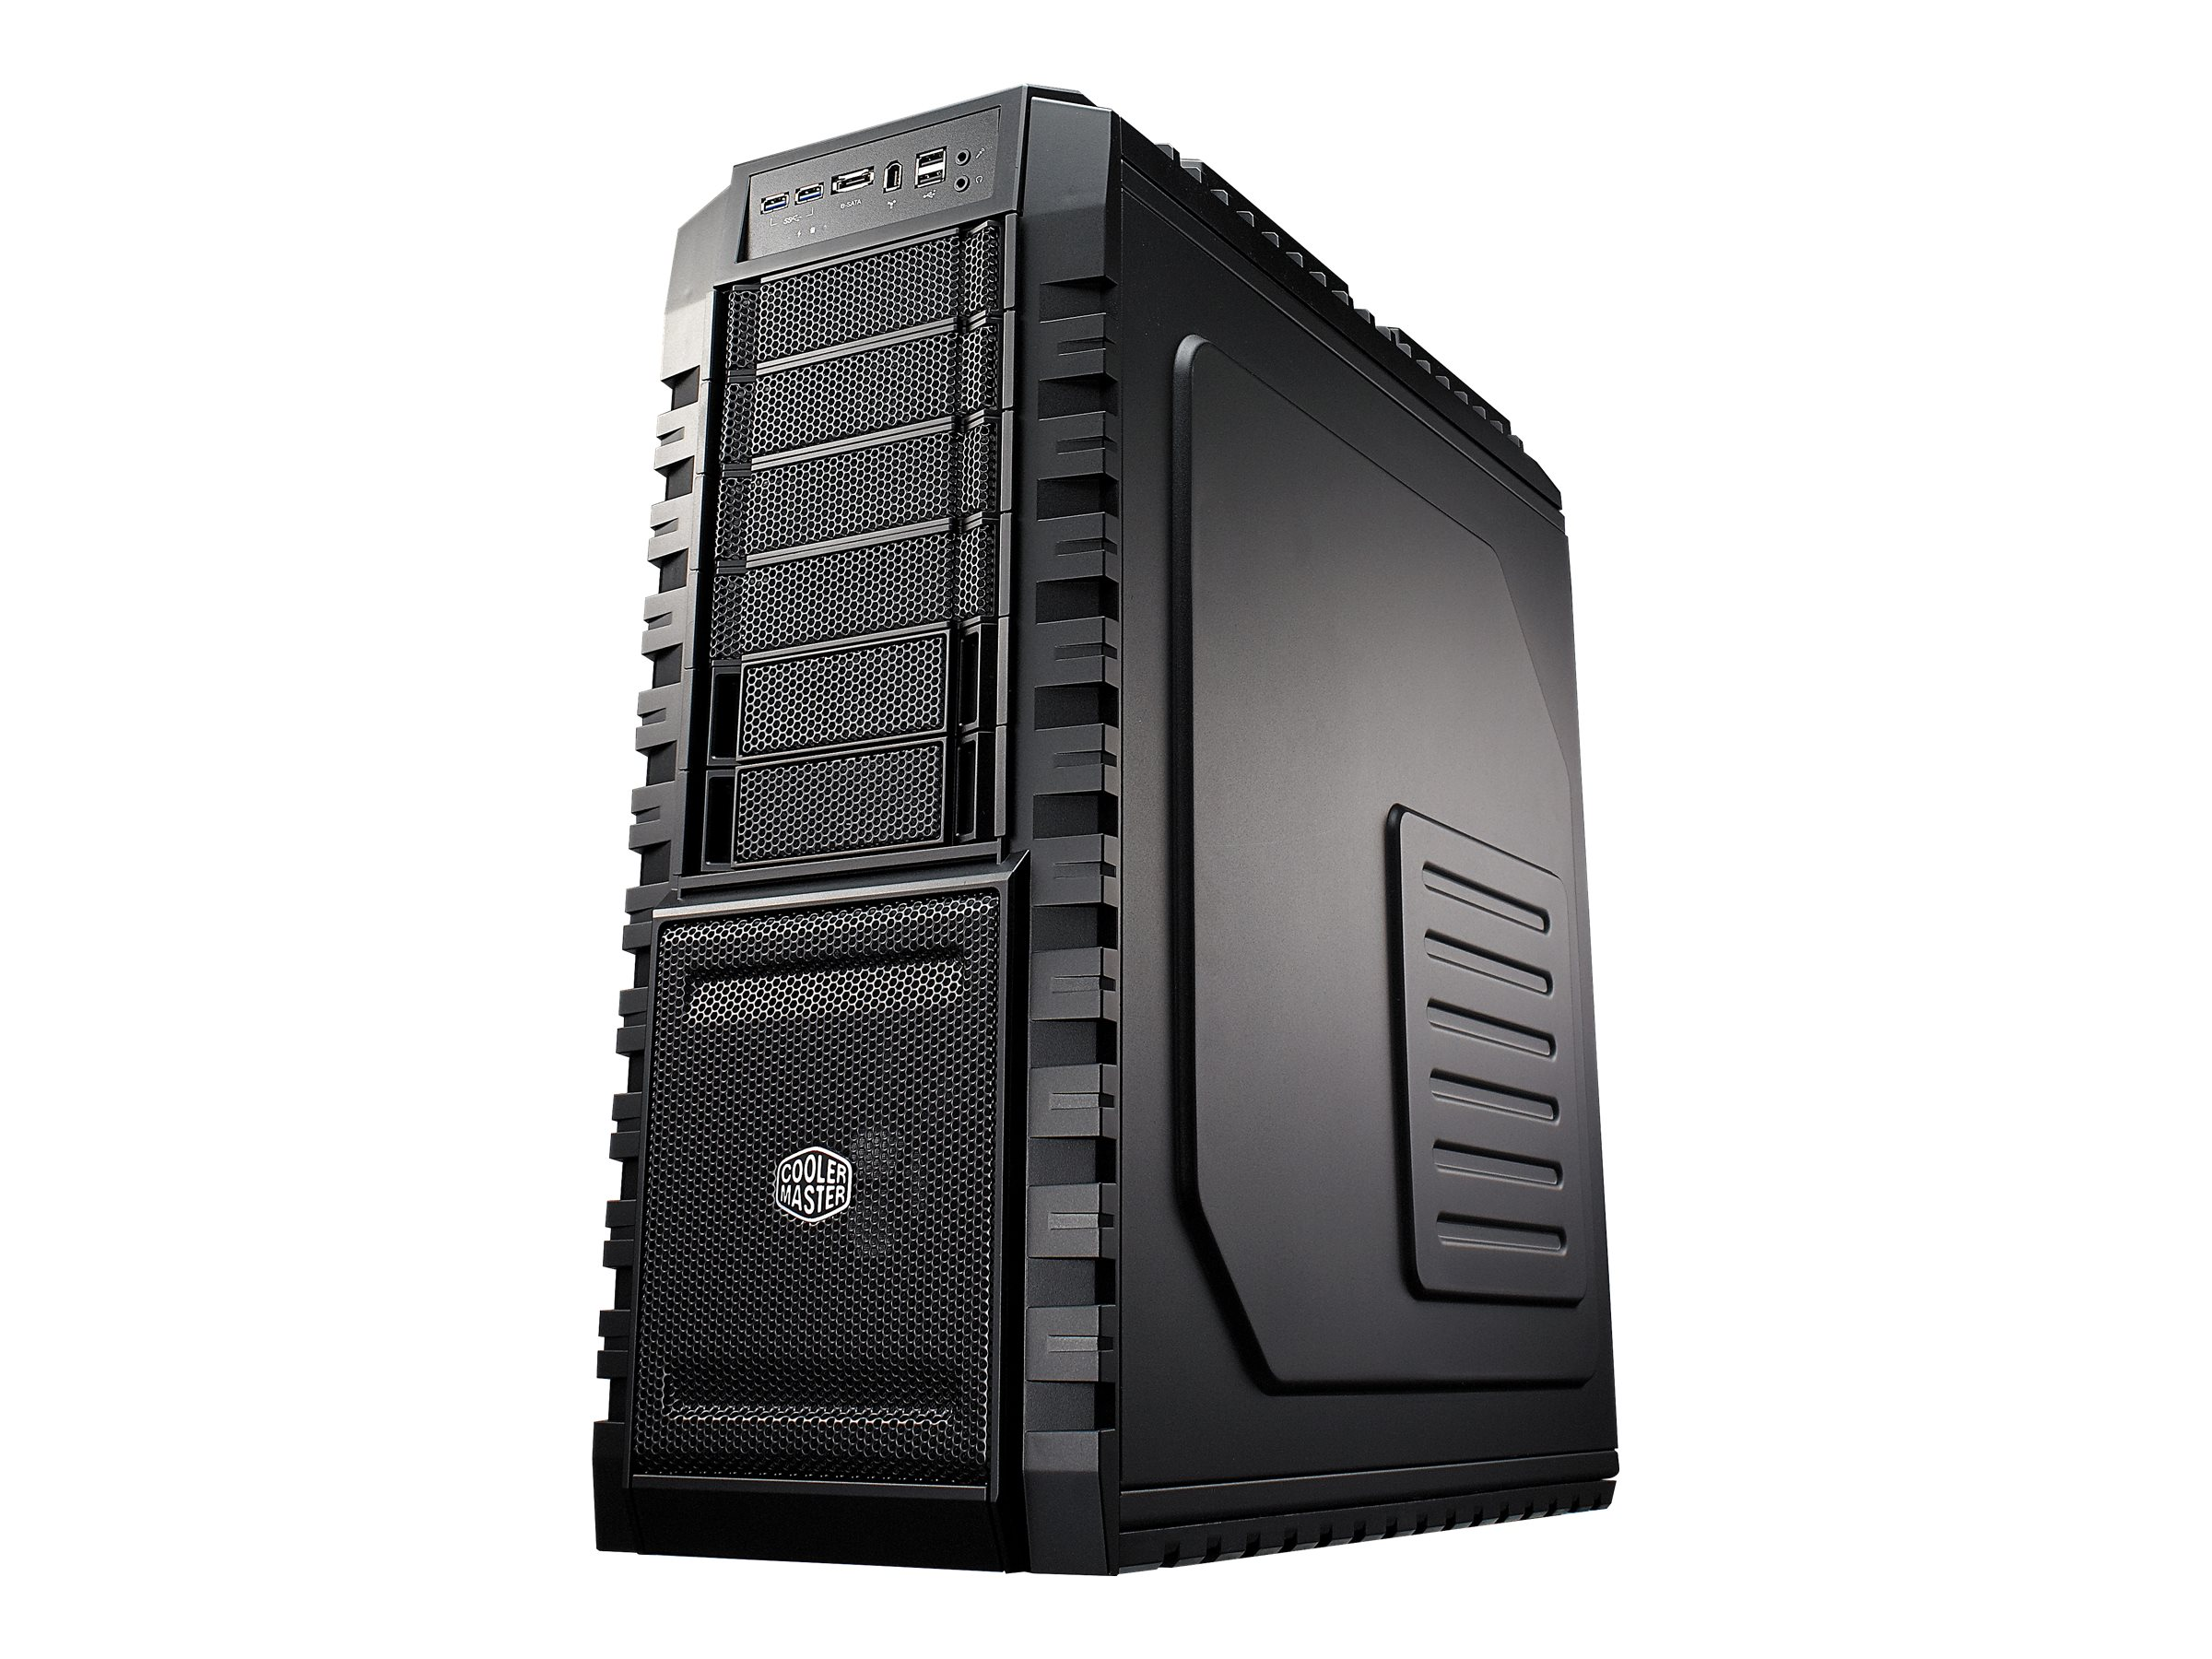 Cooler Master HAF X - Full Tower - Erweitertes ATX (ATX / PS/2) - schwarz - USB/FireWire/Audio/E-SATA